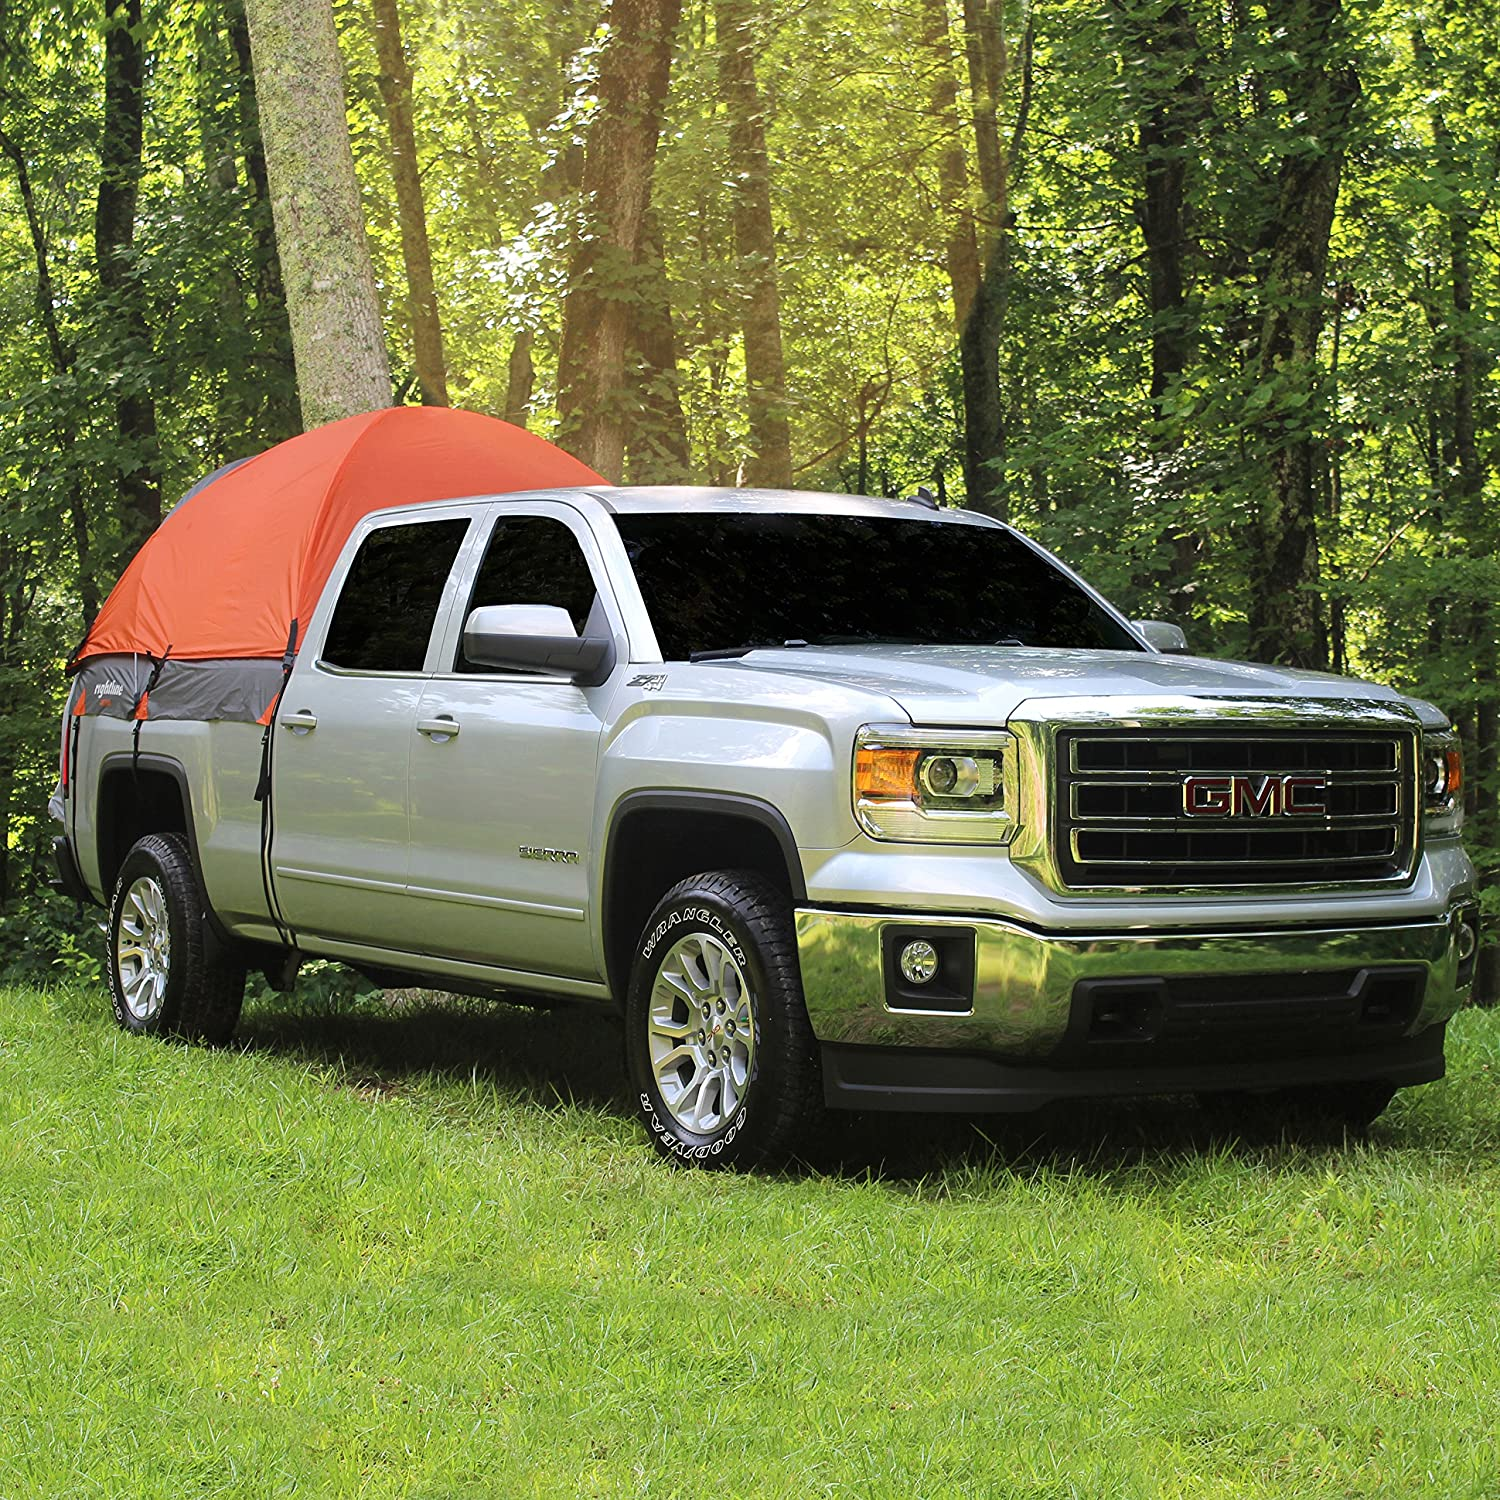 Toyota Tacoma Bed Tent Amp Adventure Series Toyota Tacoma By